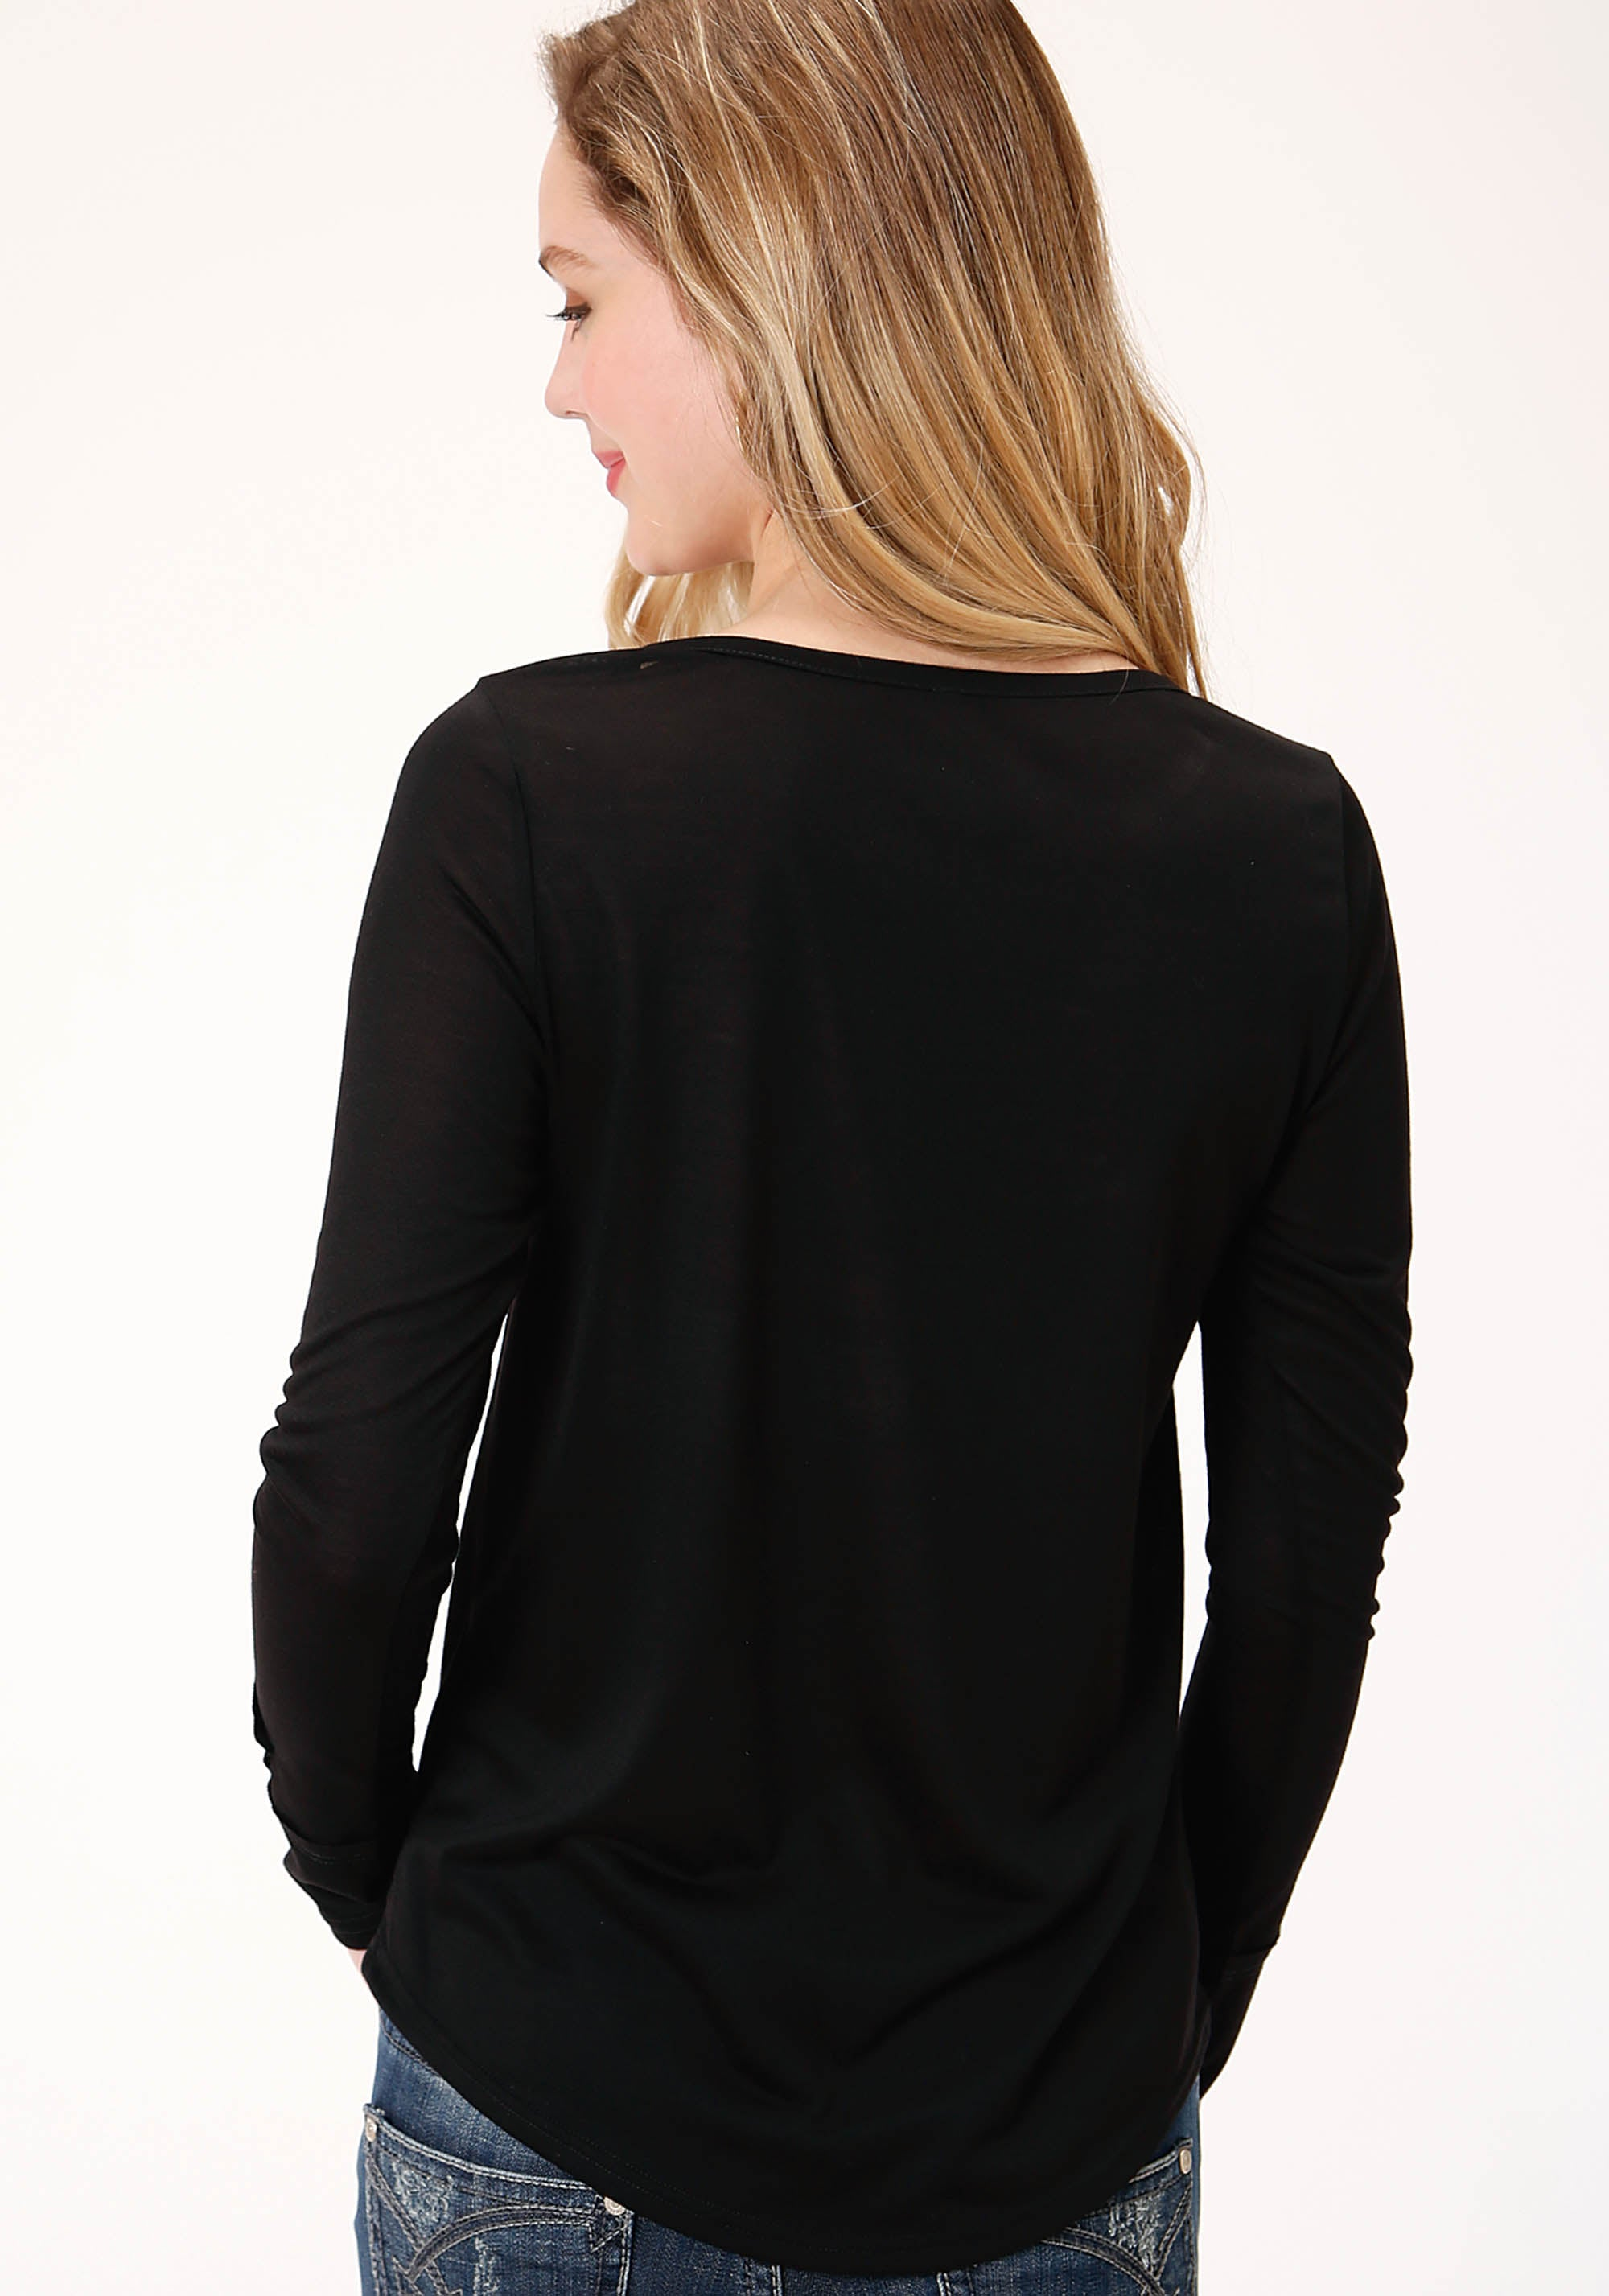 ROPER WOMENS BLACK 00375 POLY RAYON LS SCOOP NECK TEE FIVE STAR COLLECTION- FALL II LONG SLEEVE